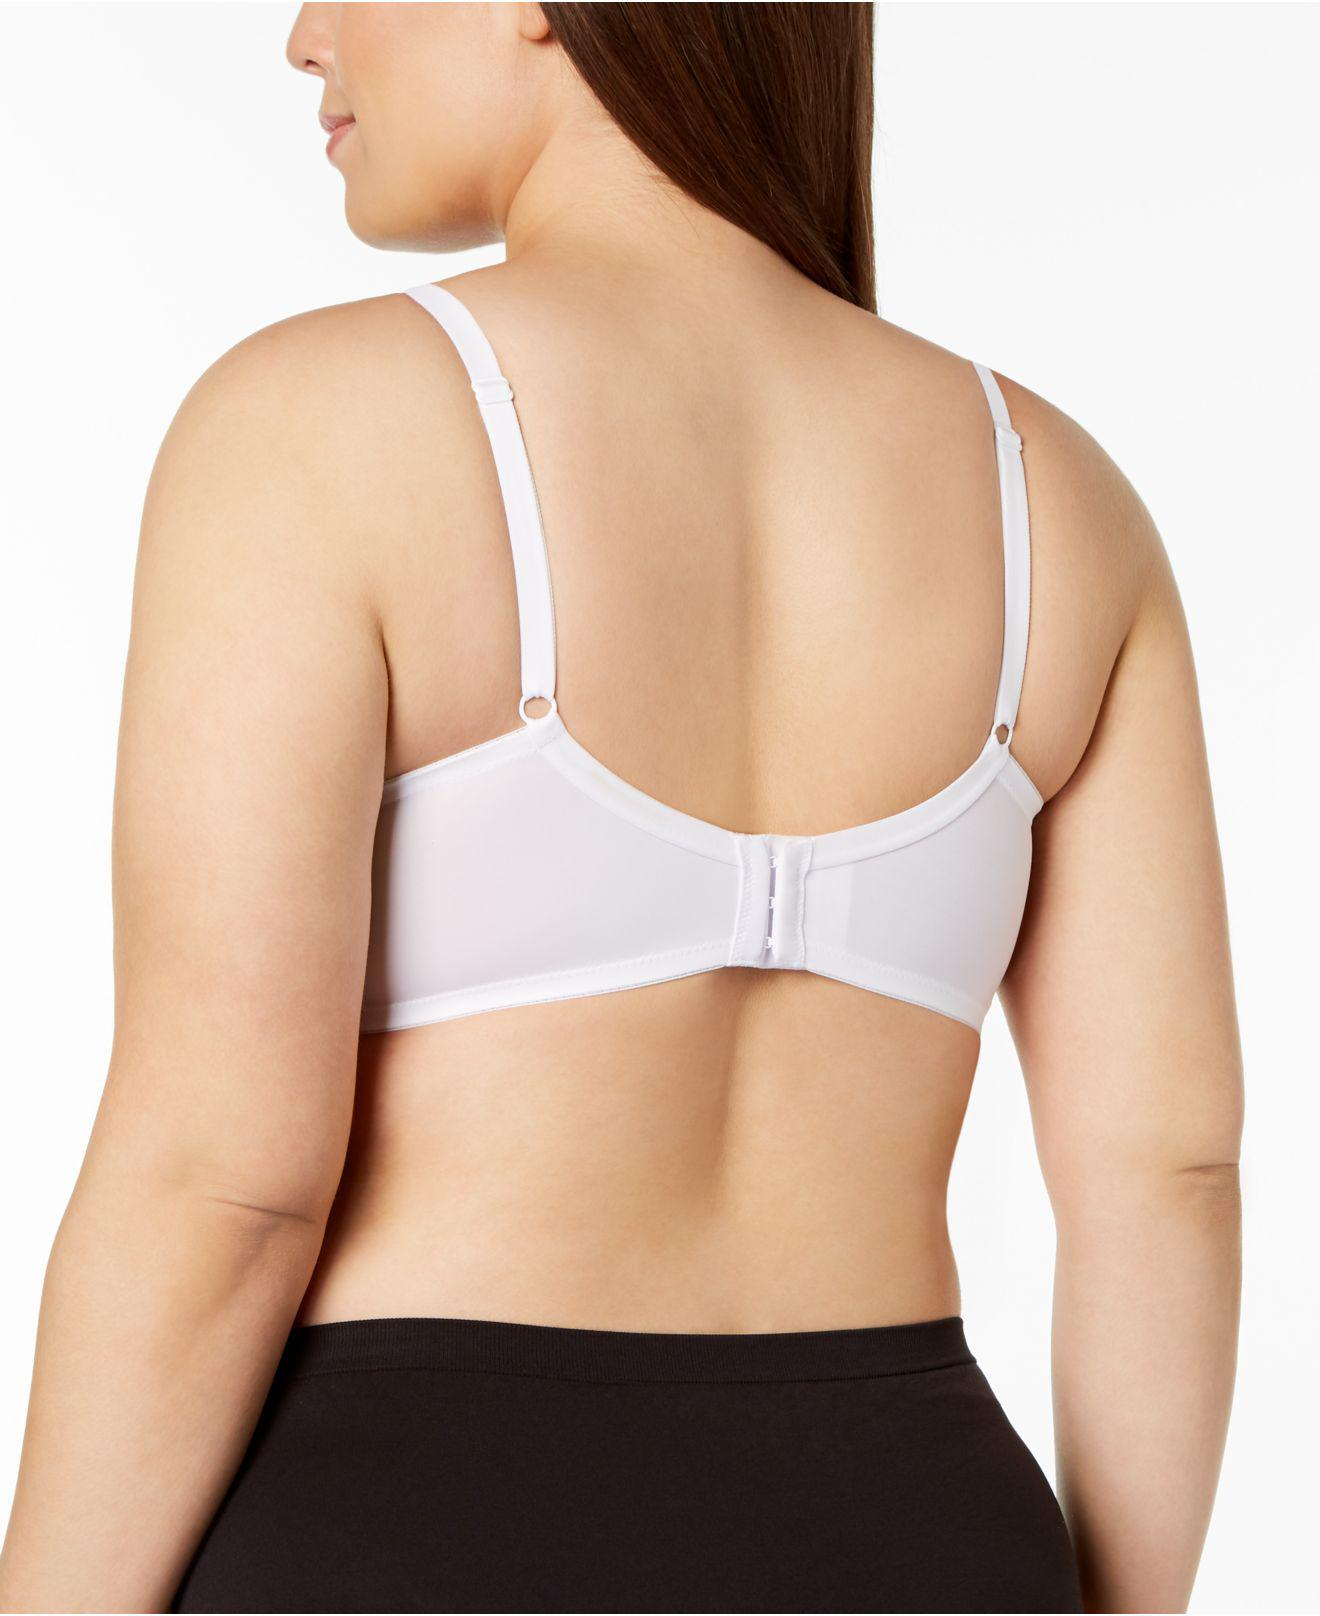 e802e151e09fe Maidenform - Natural Love The Lift Plunge Push Up And In Underwire Bra  Dm9900 - Lyst. View fullscreen